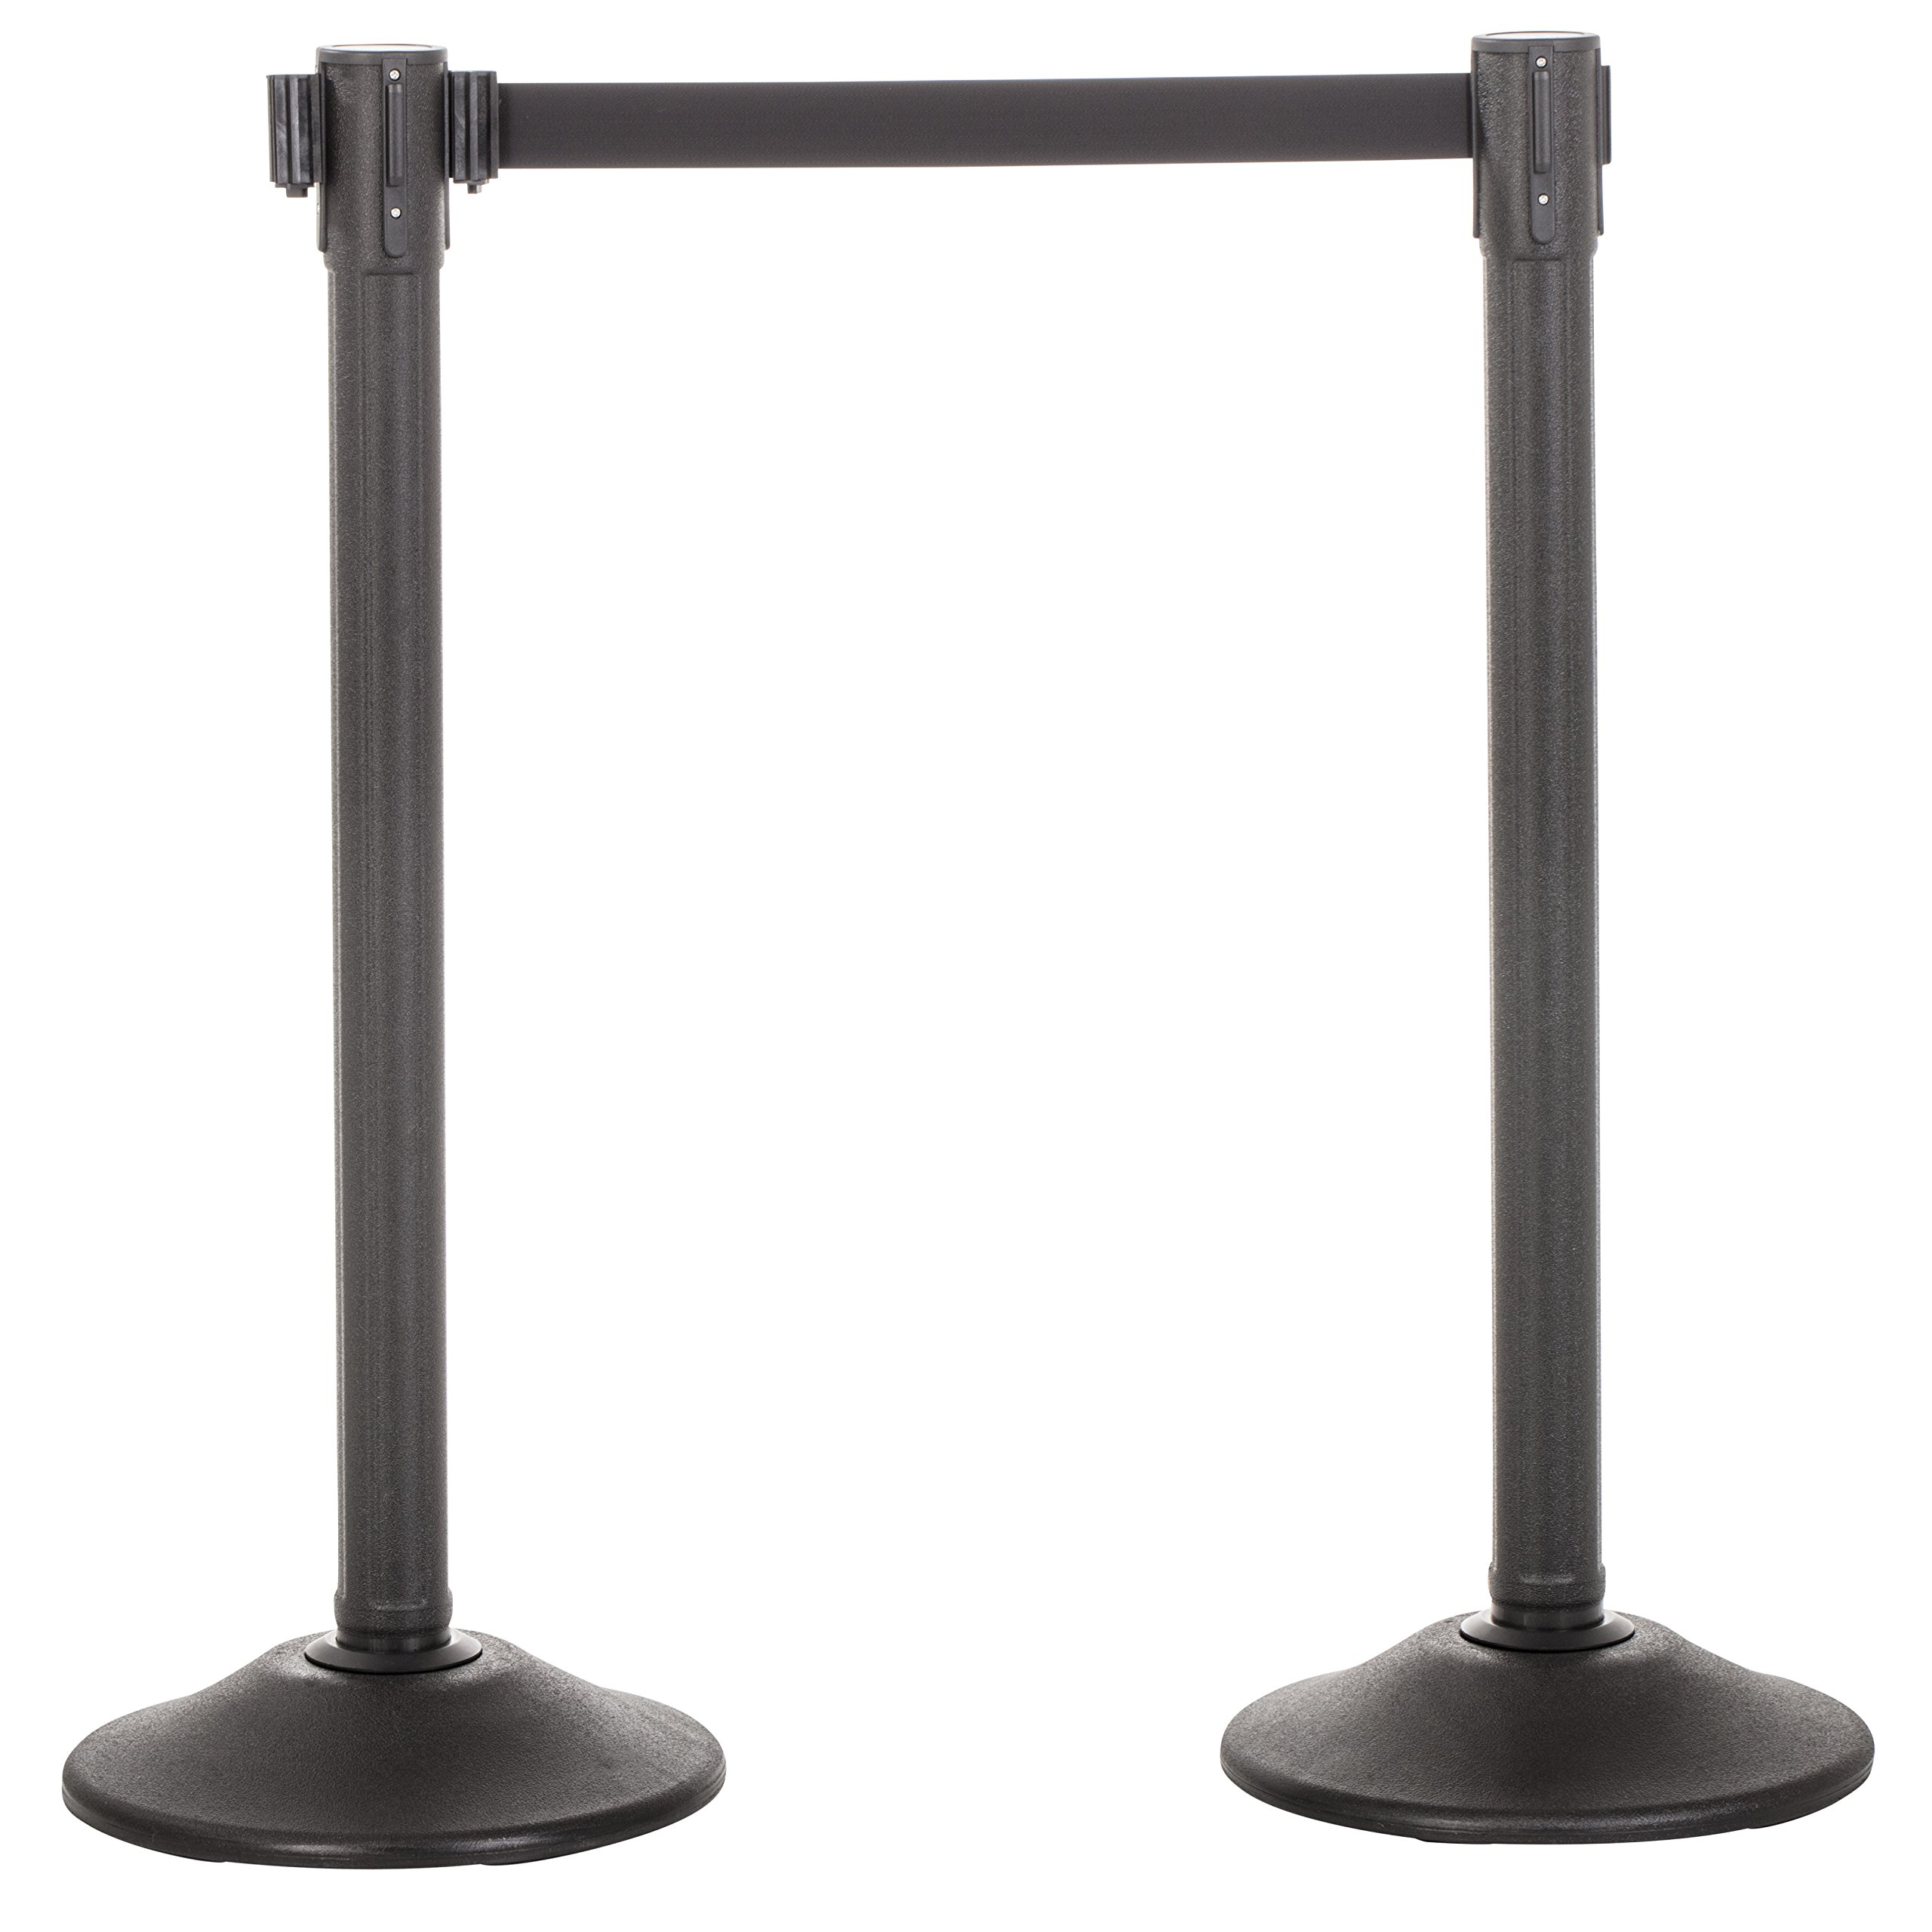 US Weight Sentry QuikSecure Stanchion with Retractable Belt (2-Pack)